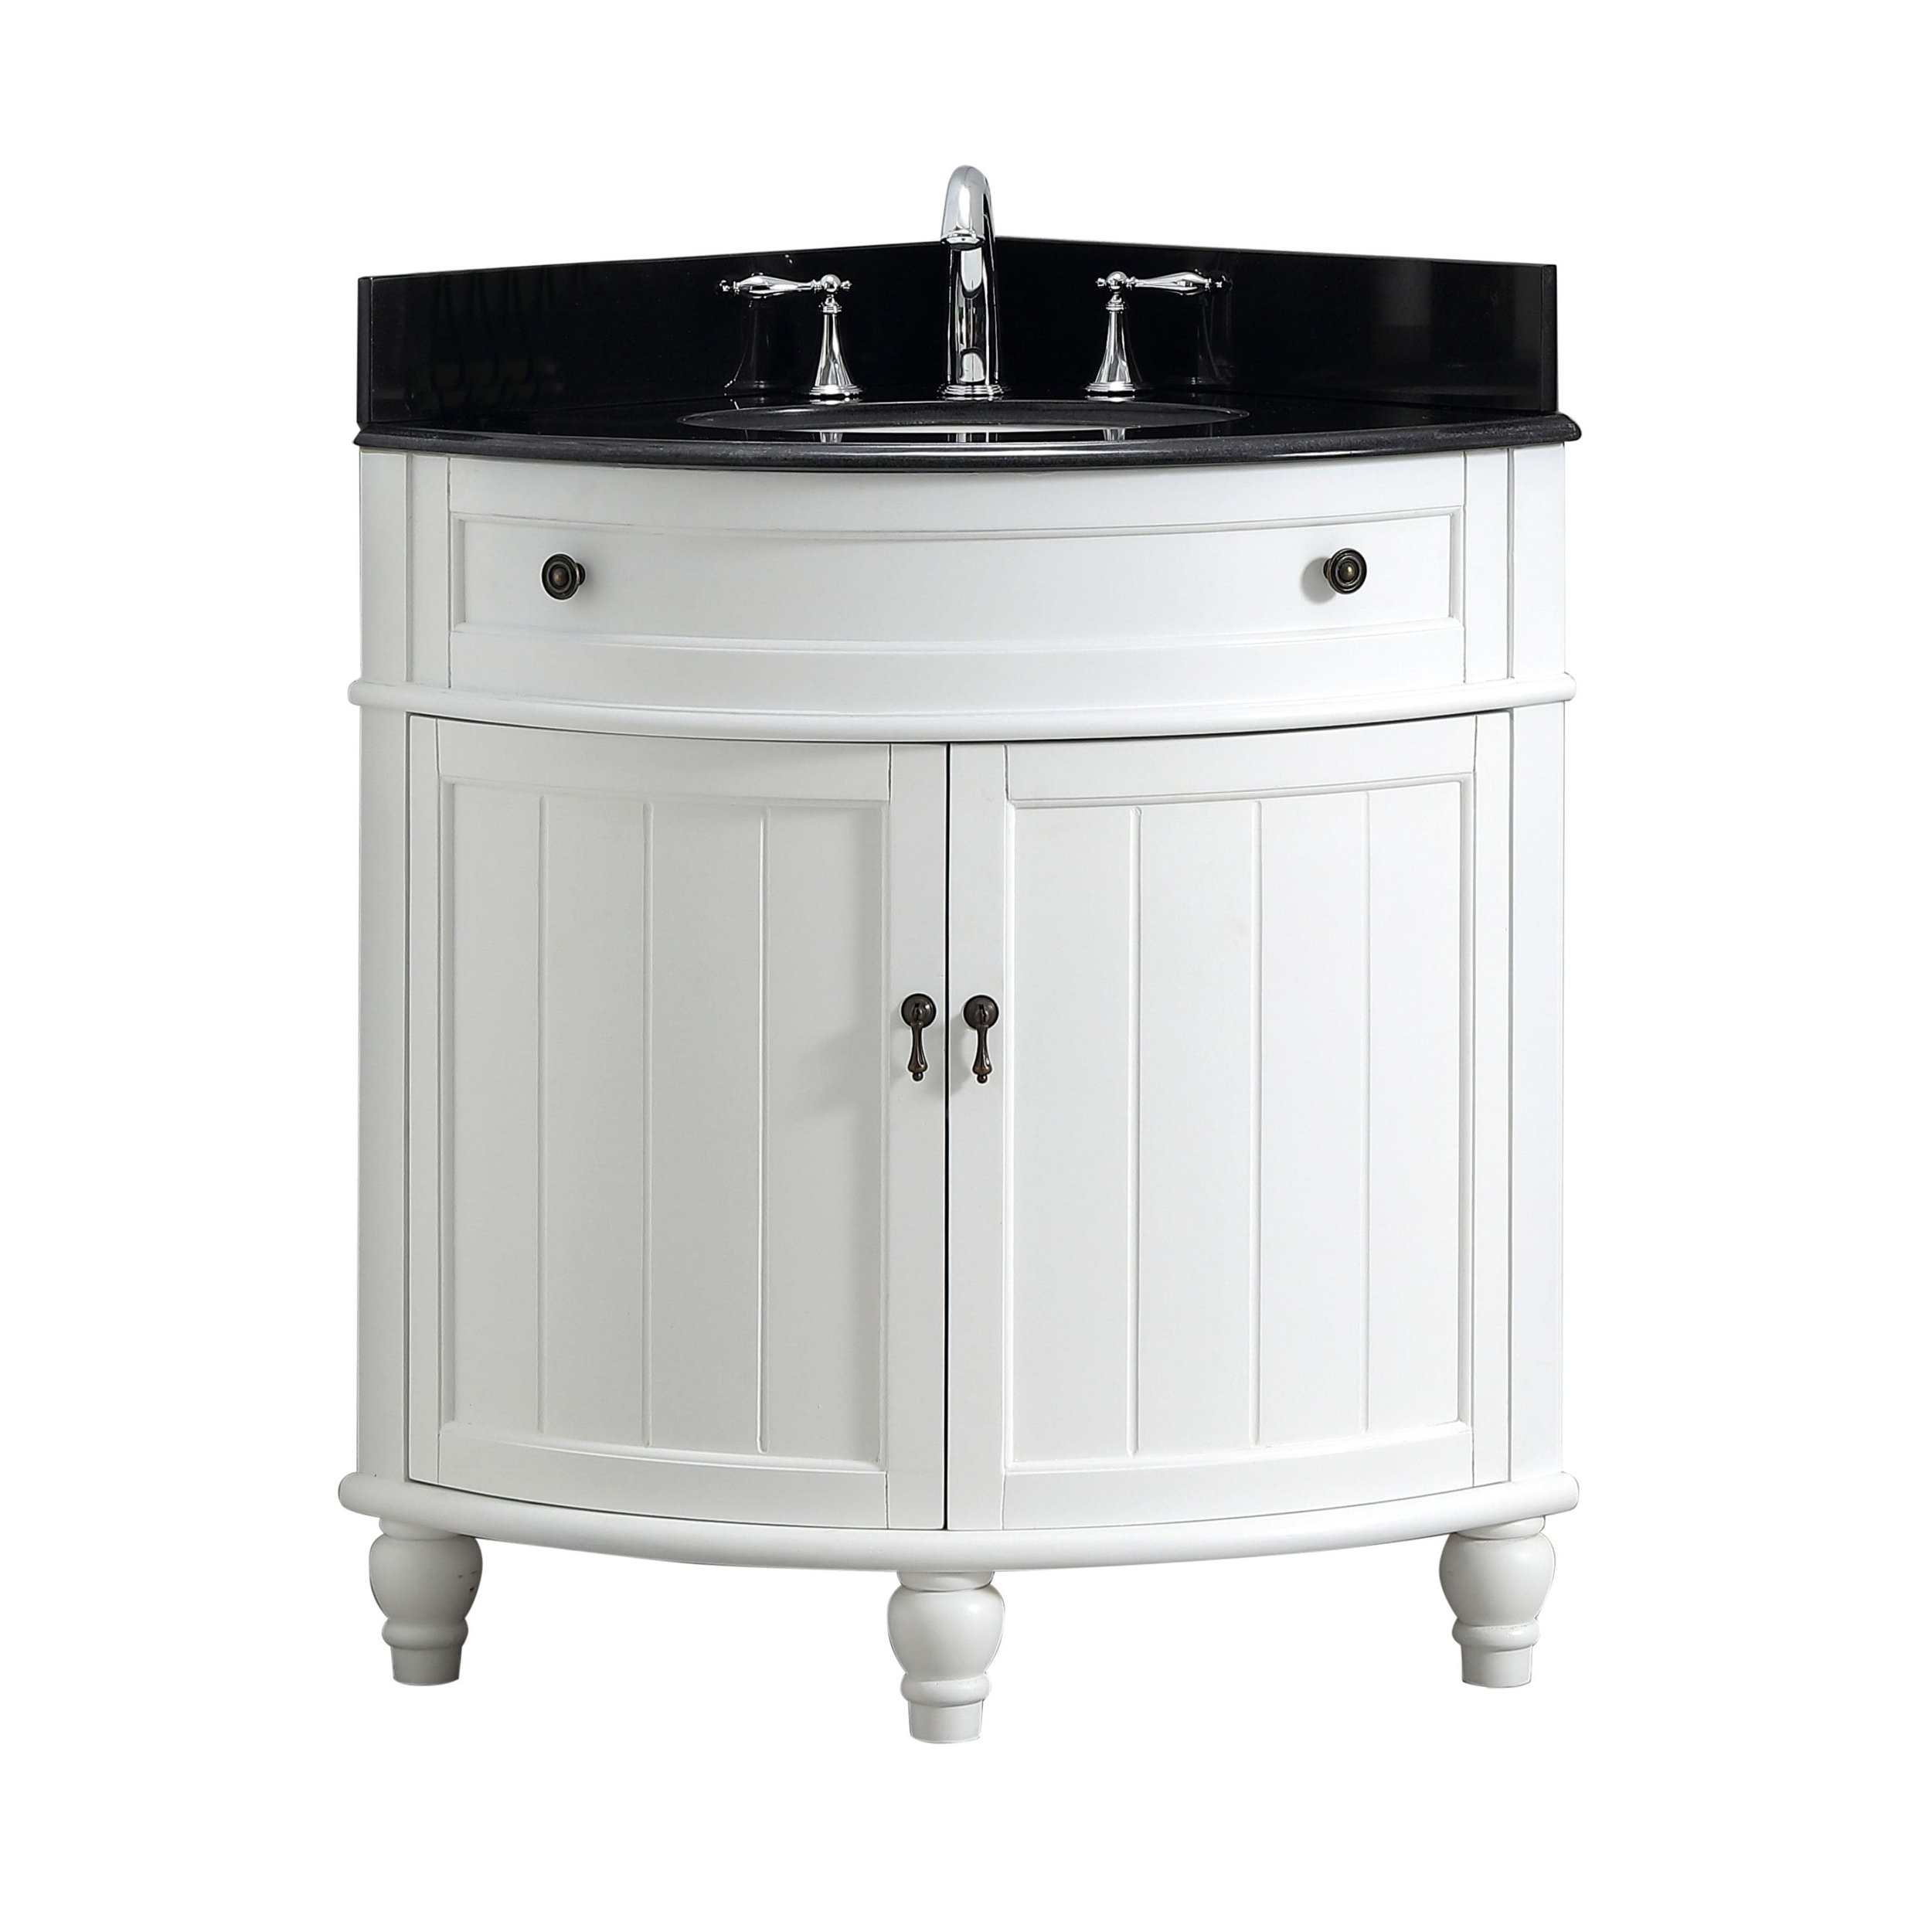 Modetti Angolo 34 Inch Single Sink Bathroom Vanity With Marble Top